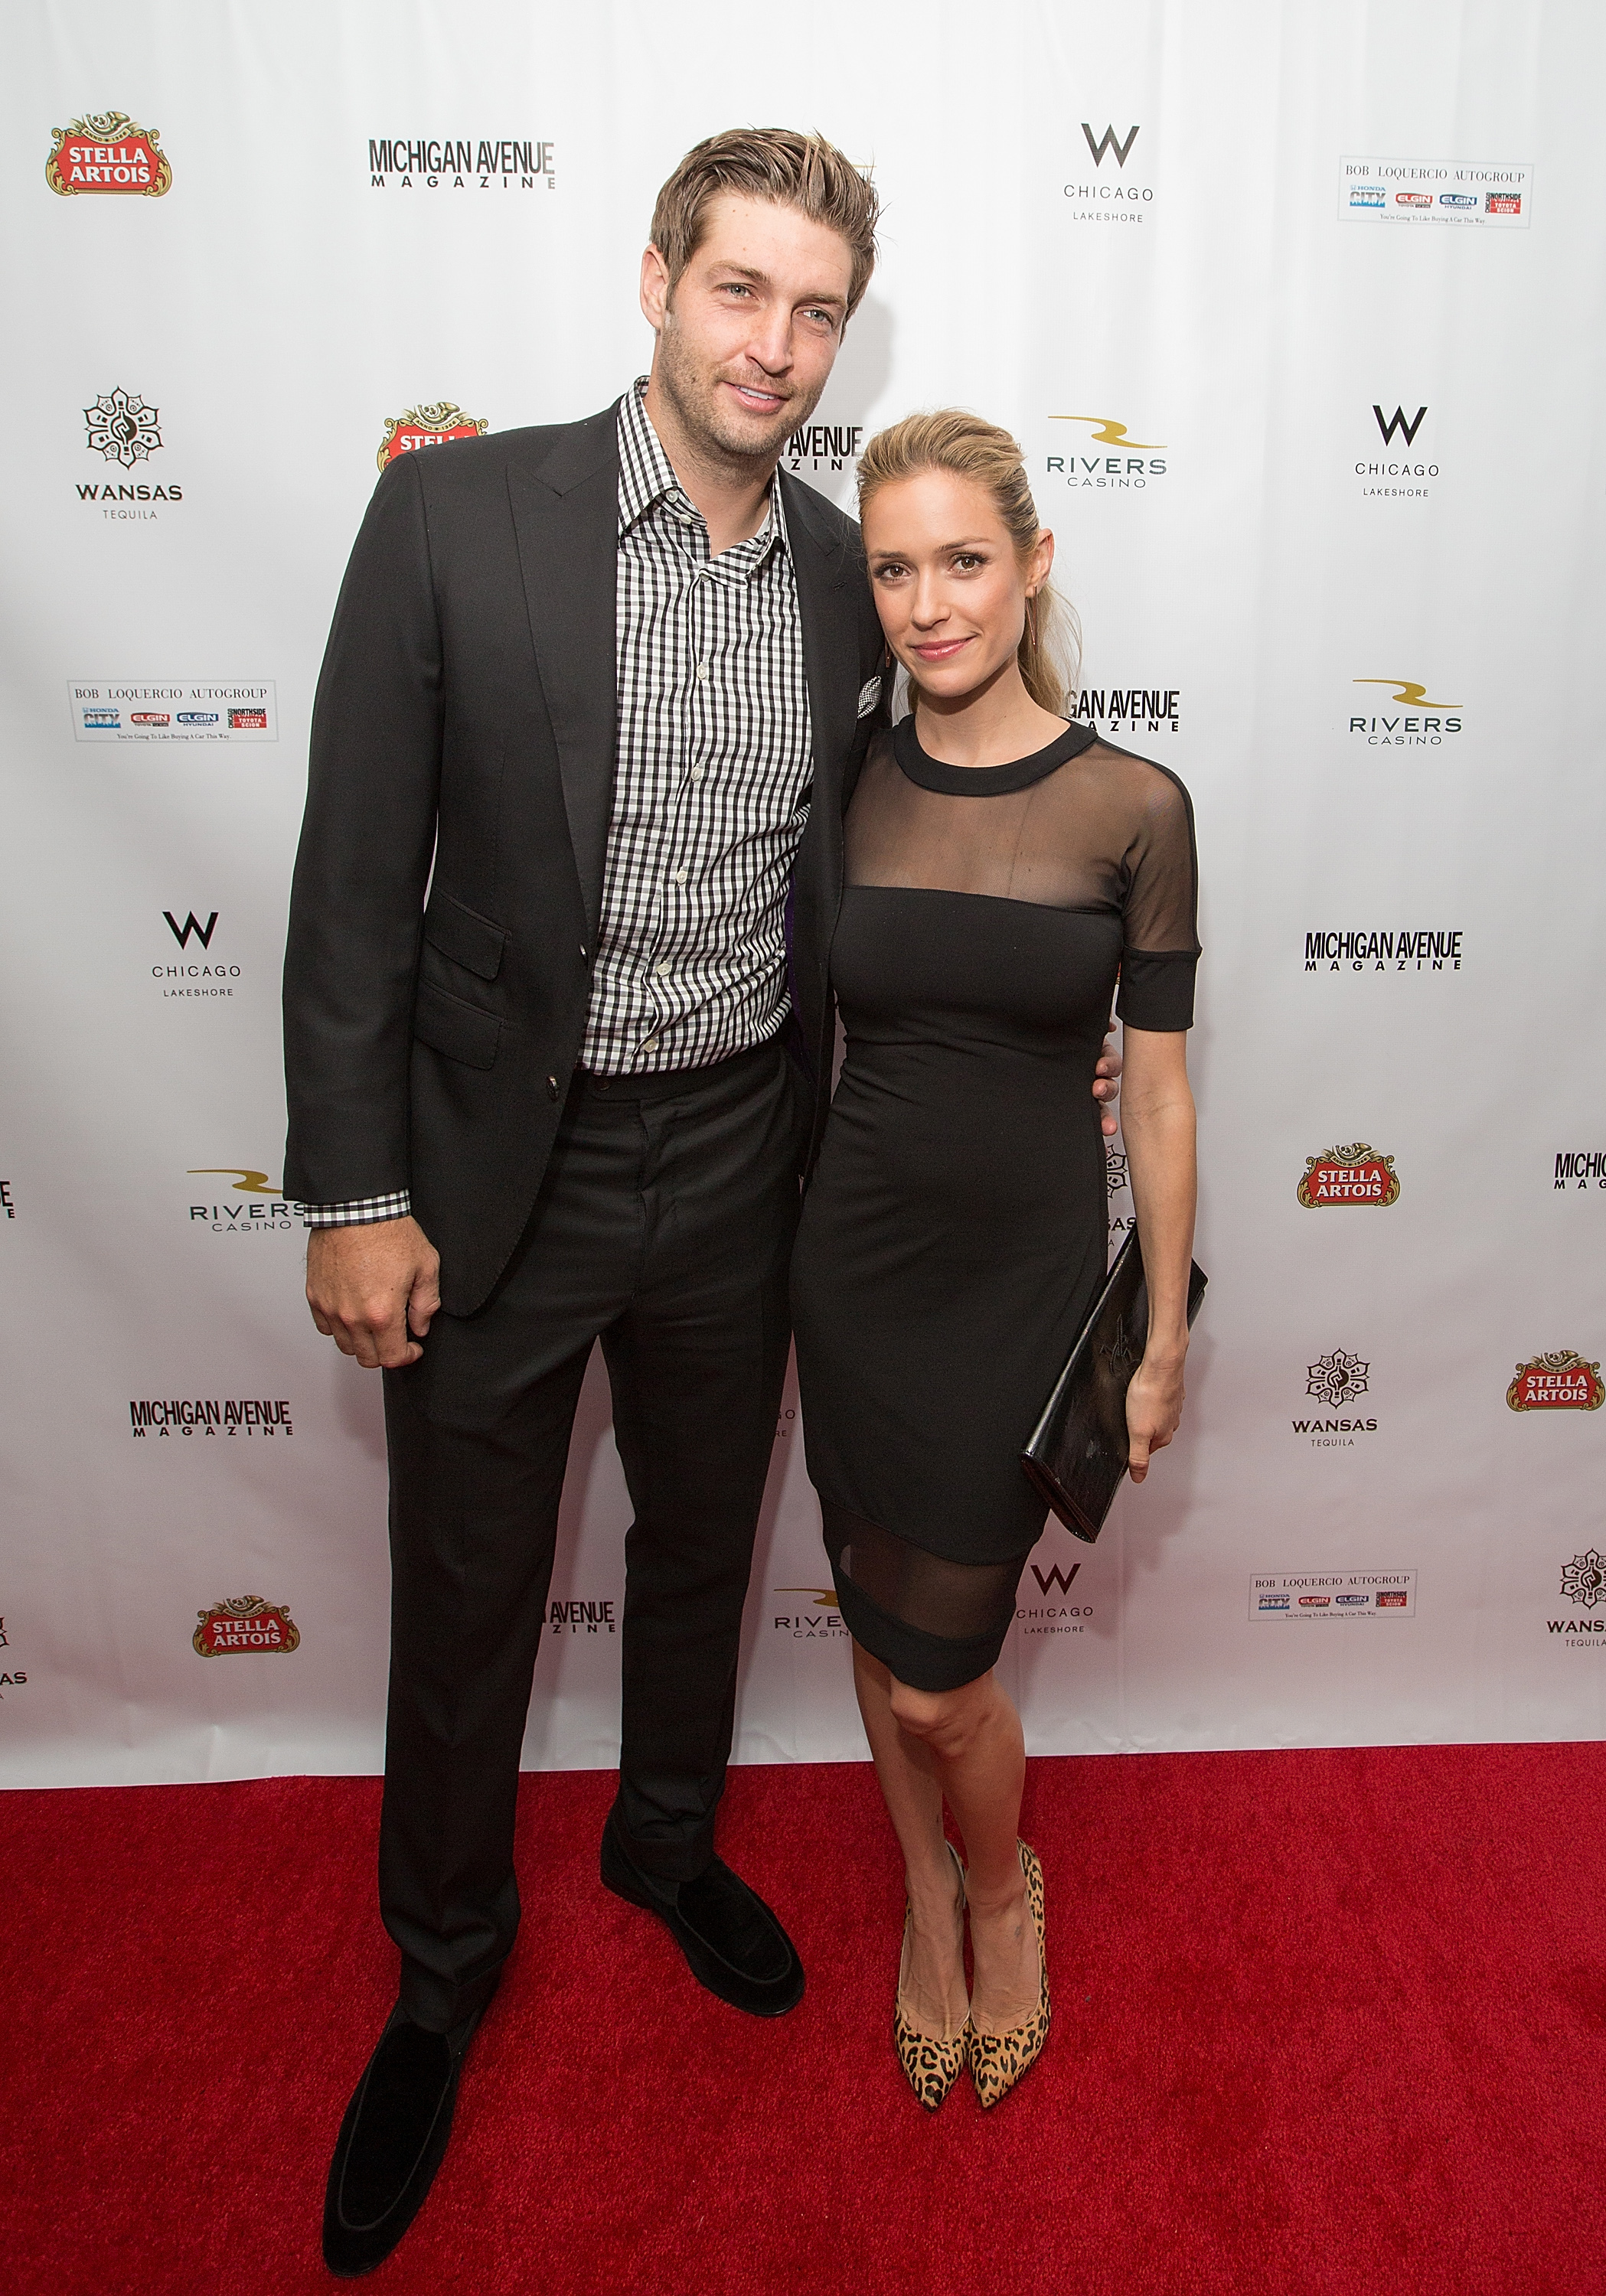 (L-R) Jay Cutler and Kristin Cavallari attend Michigan Avenue Magazine's Fall Fashion Issue Celebration With Kristin Cavallari at W Chicago Lakeshore on September 9, 2014 in Chicago, Illinois. (Getty Images)